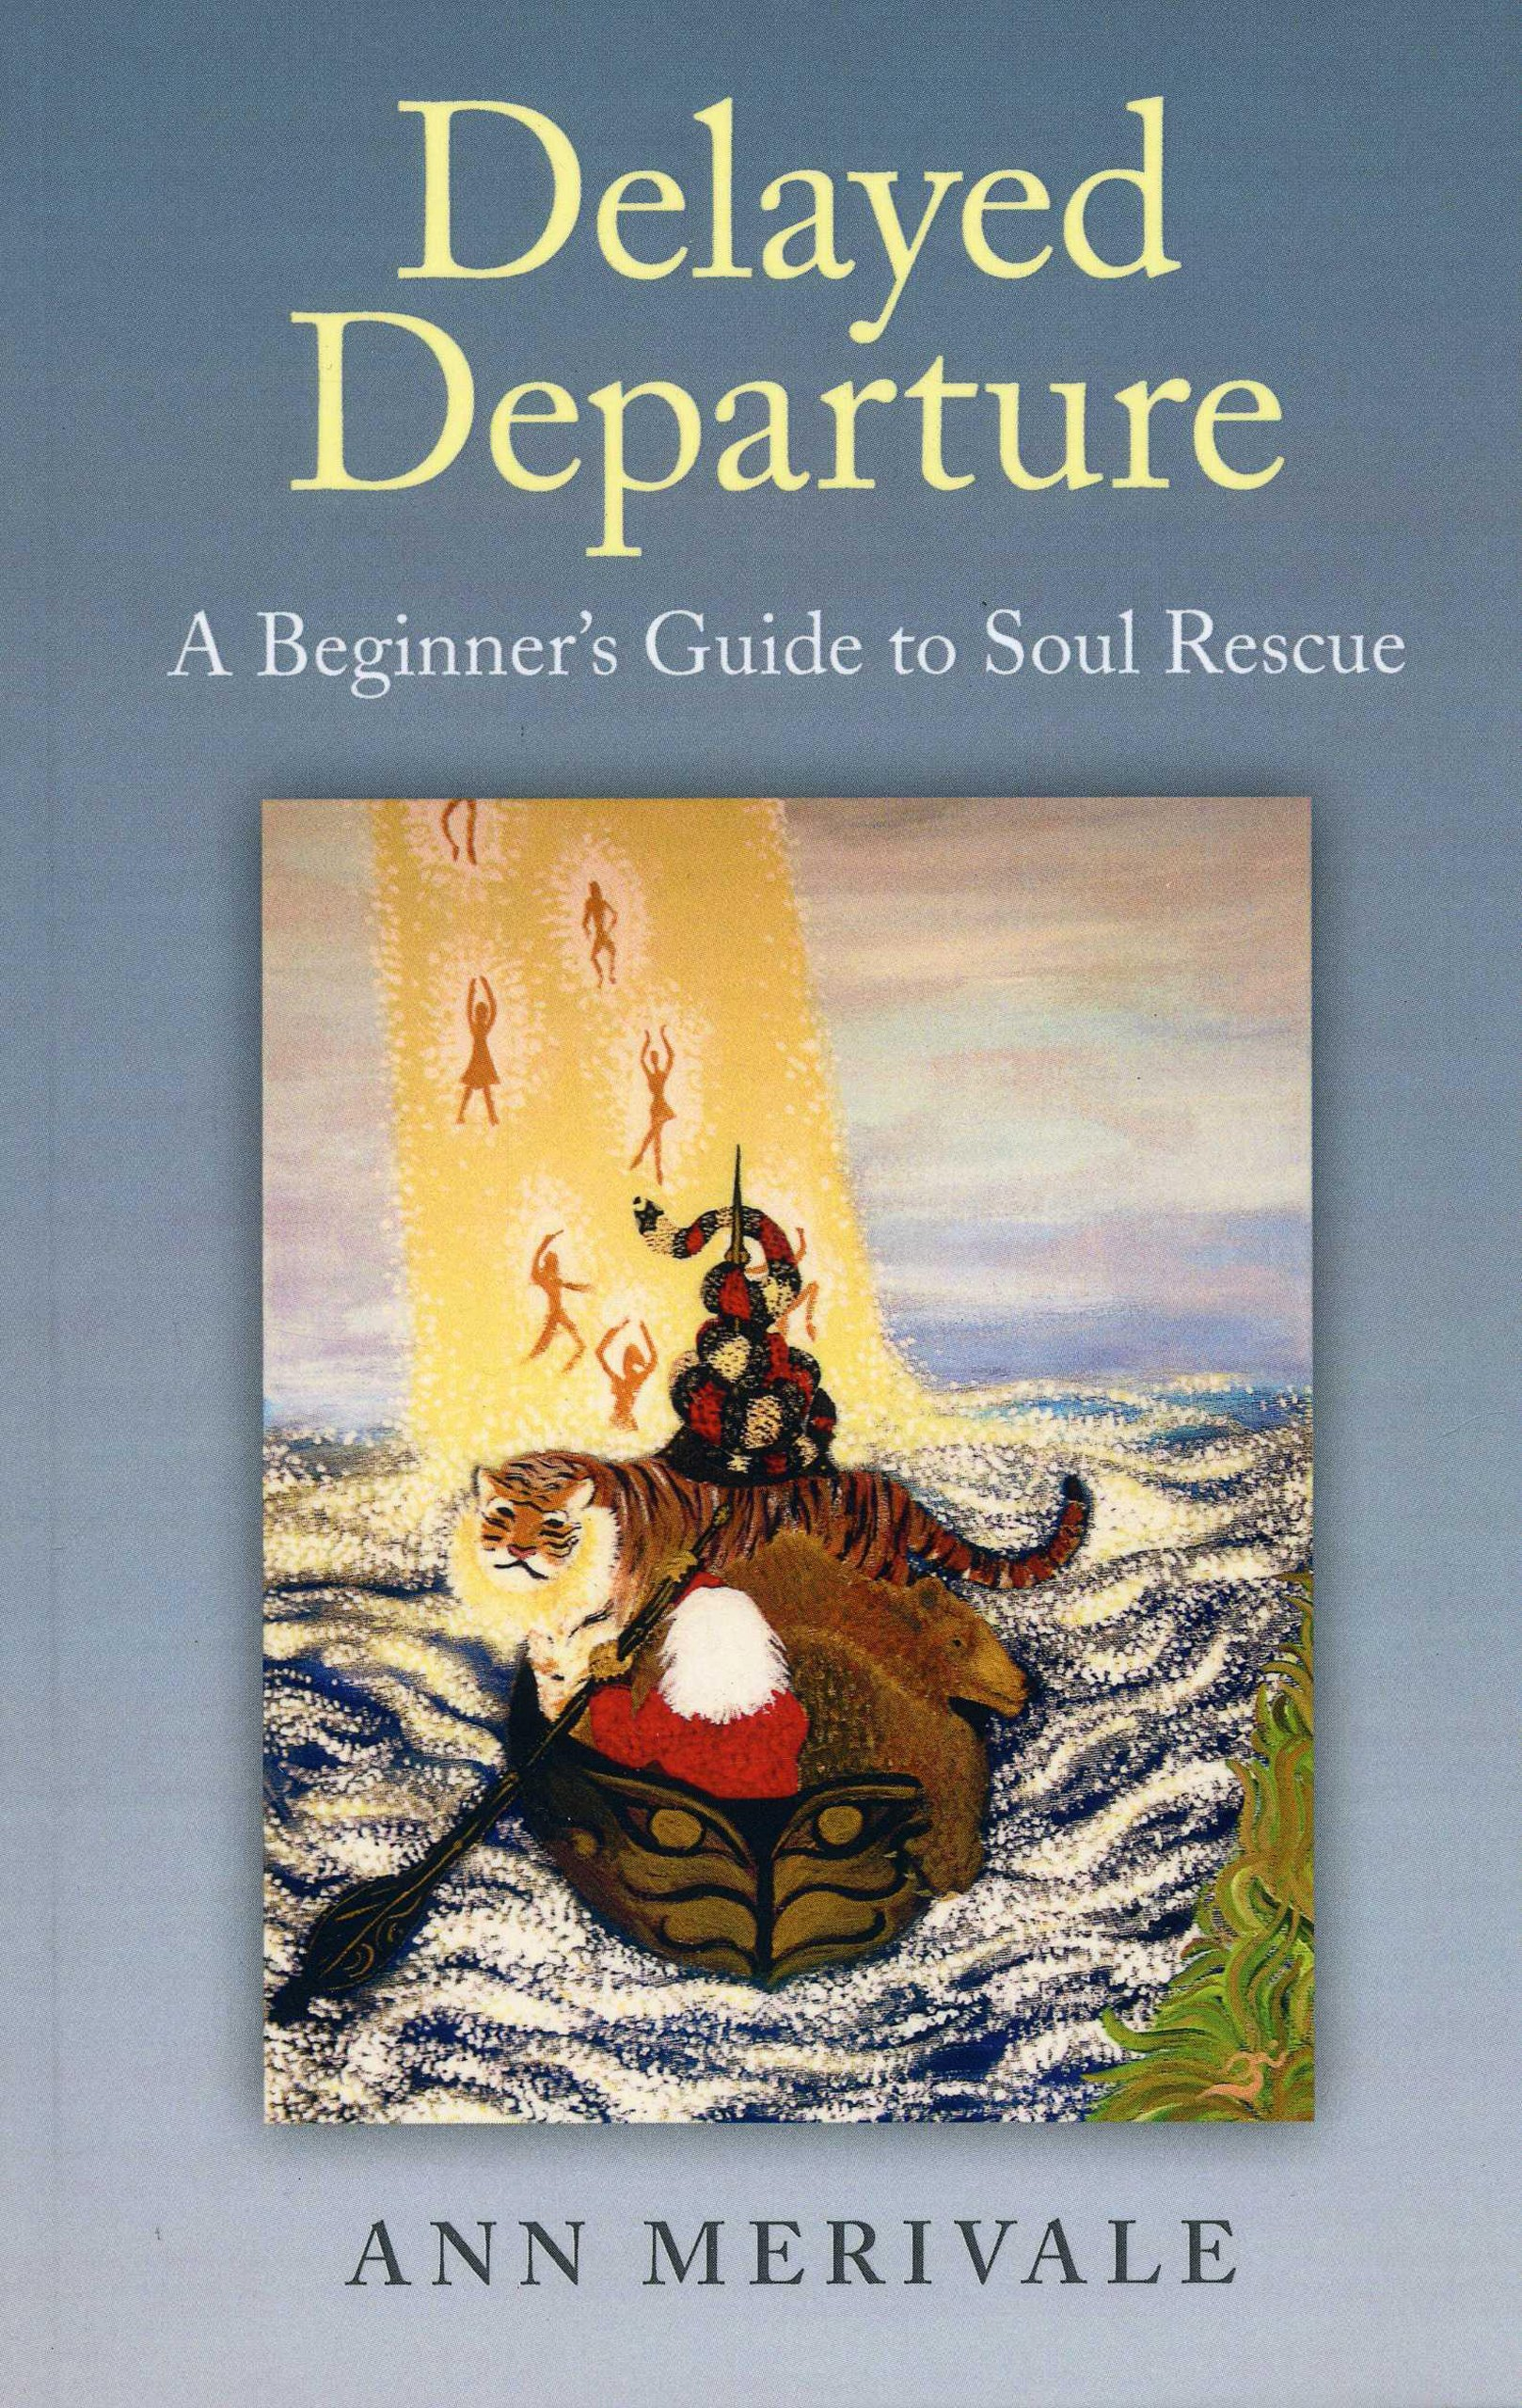 Delayed Departure: A Beginner's Guide to Soul Rescue PDF